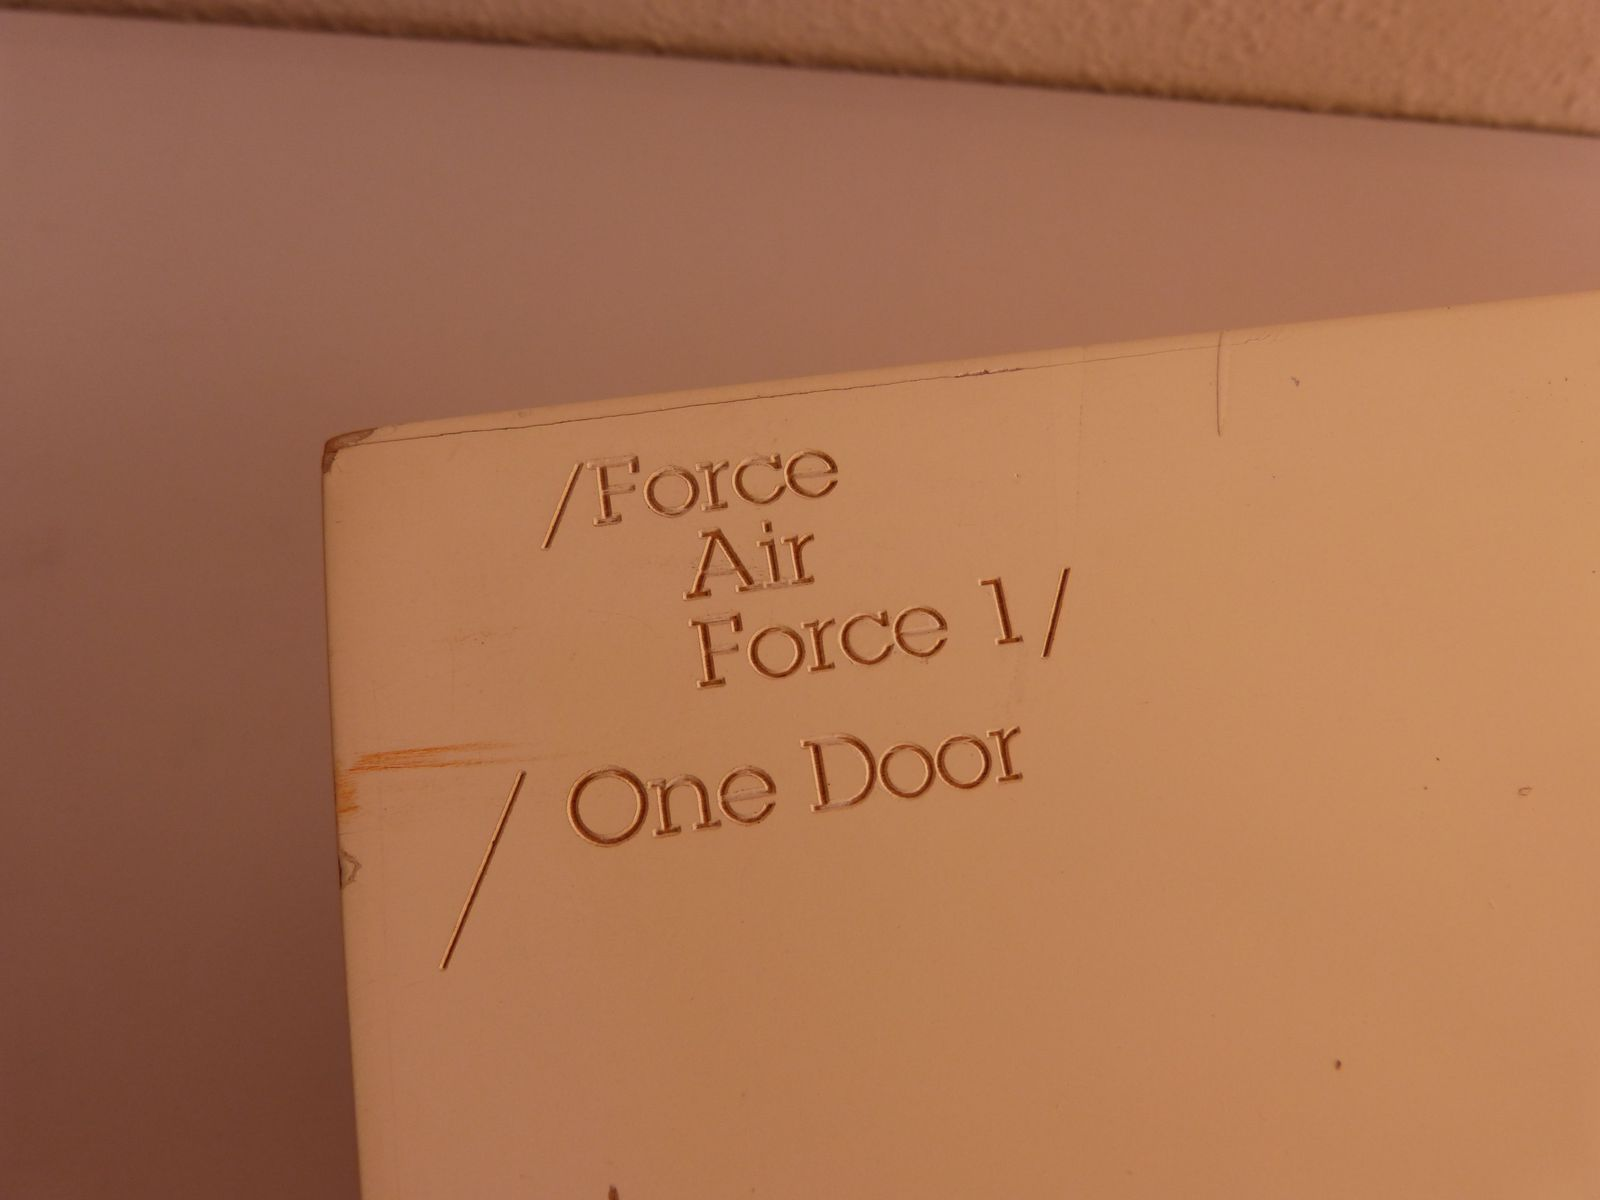 Air Force One Door